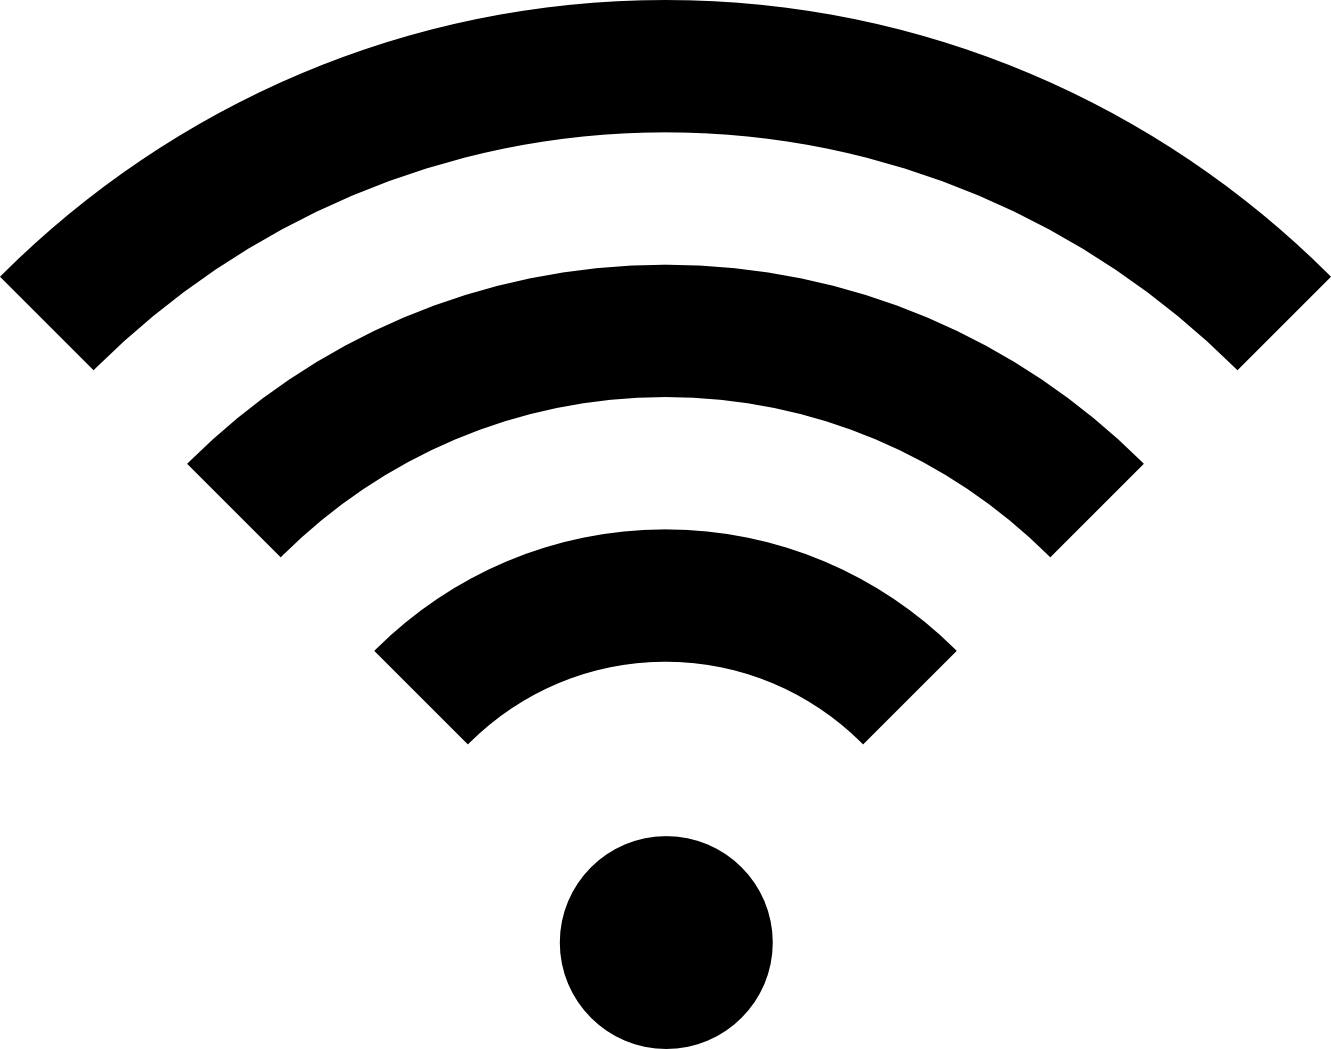 Images For > Wifi Logo Png - Cliparts.co